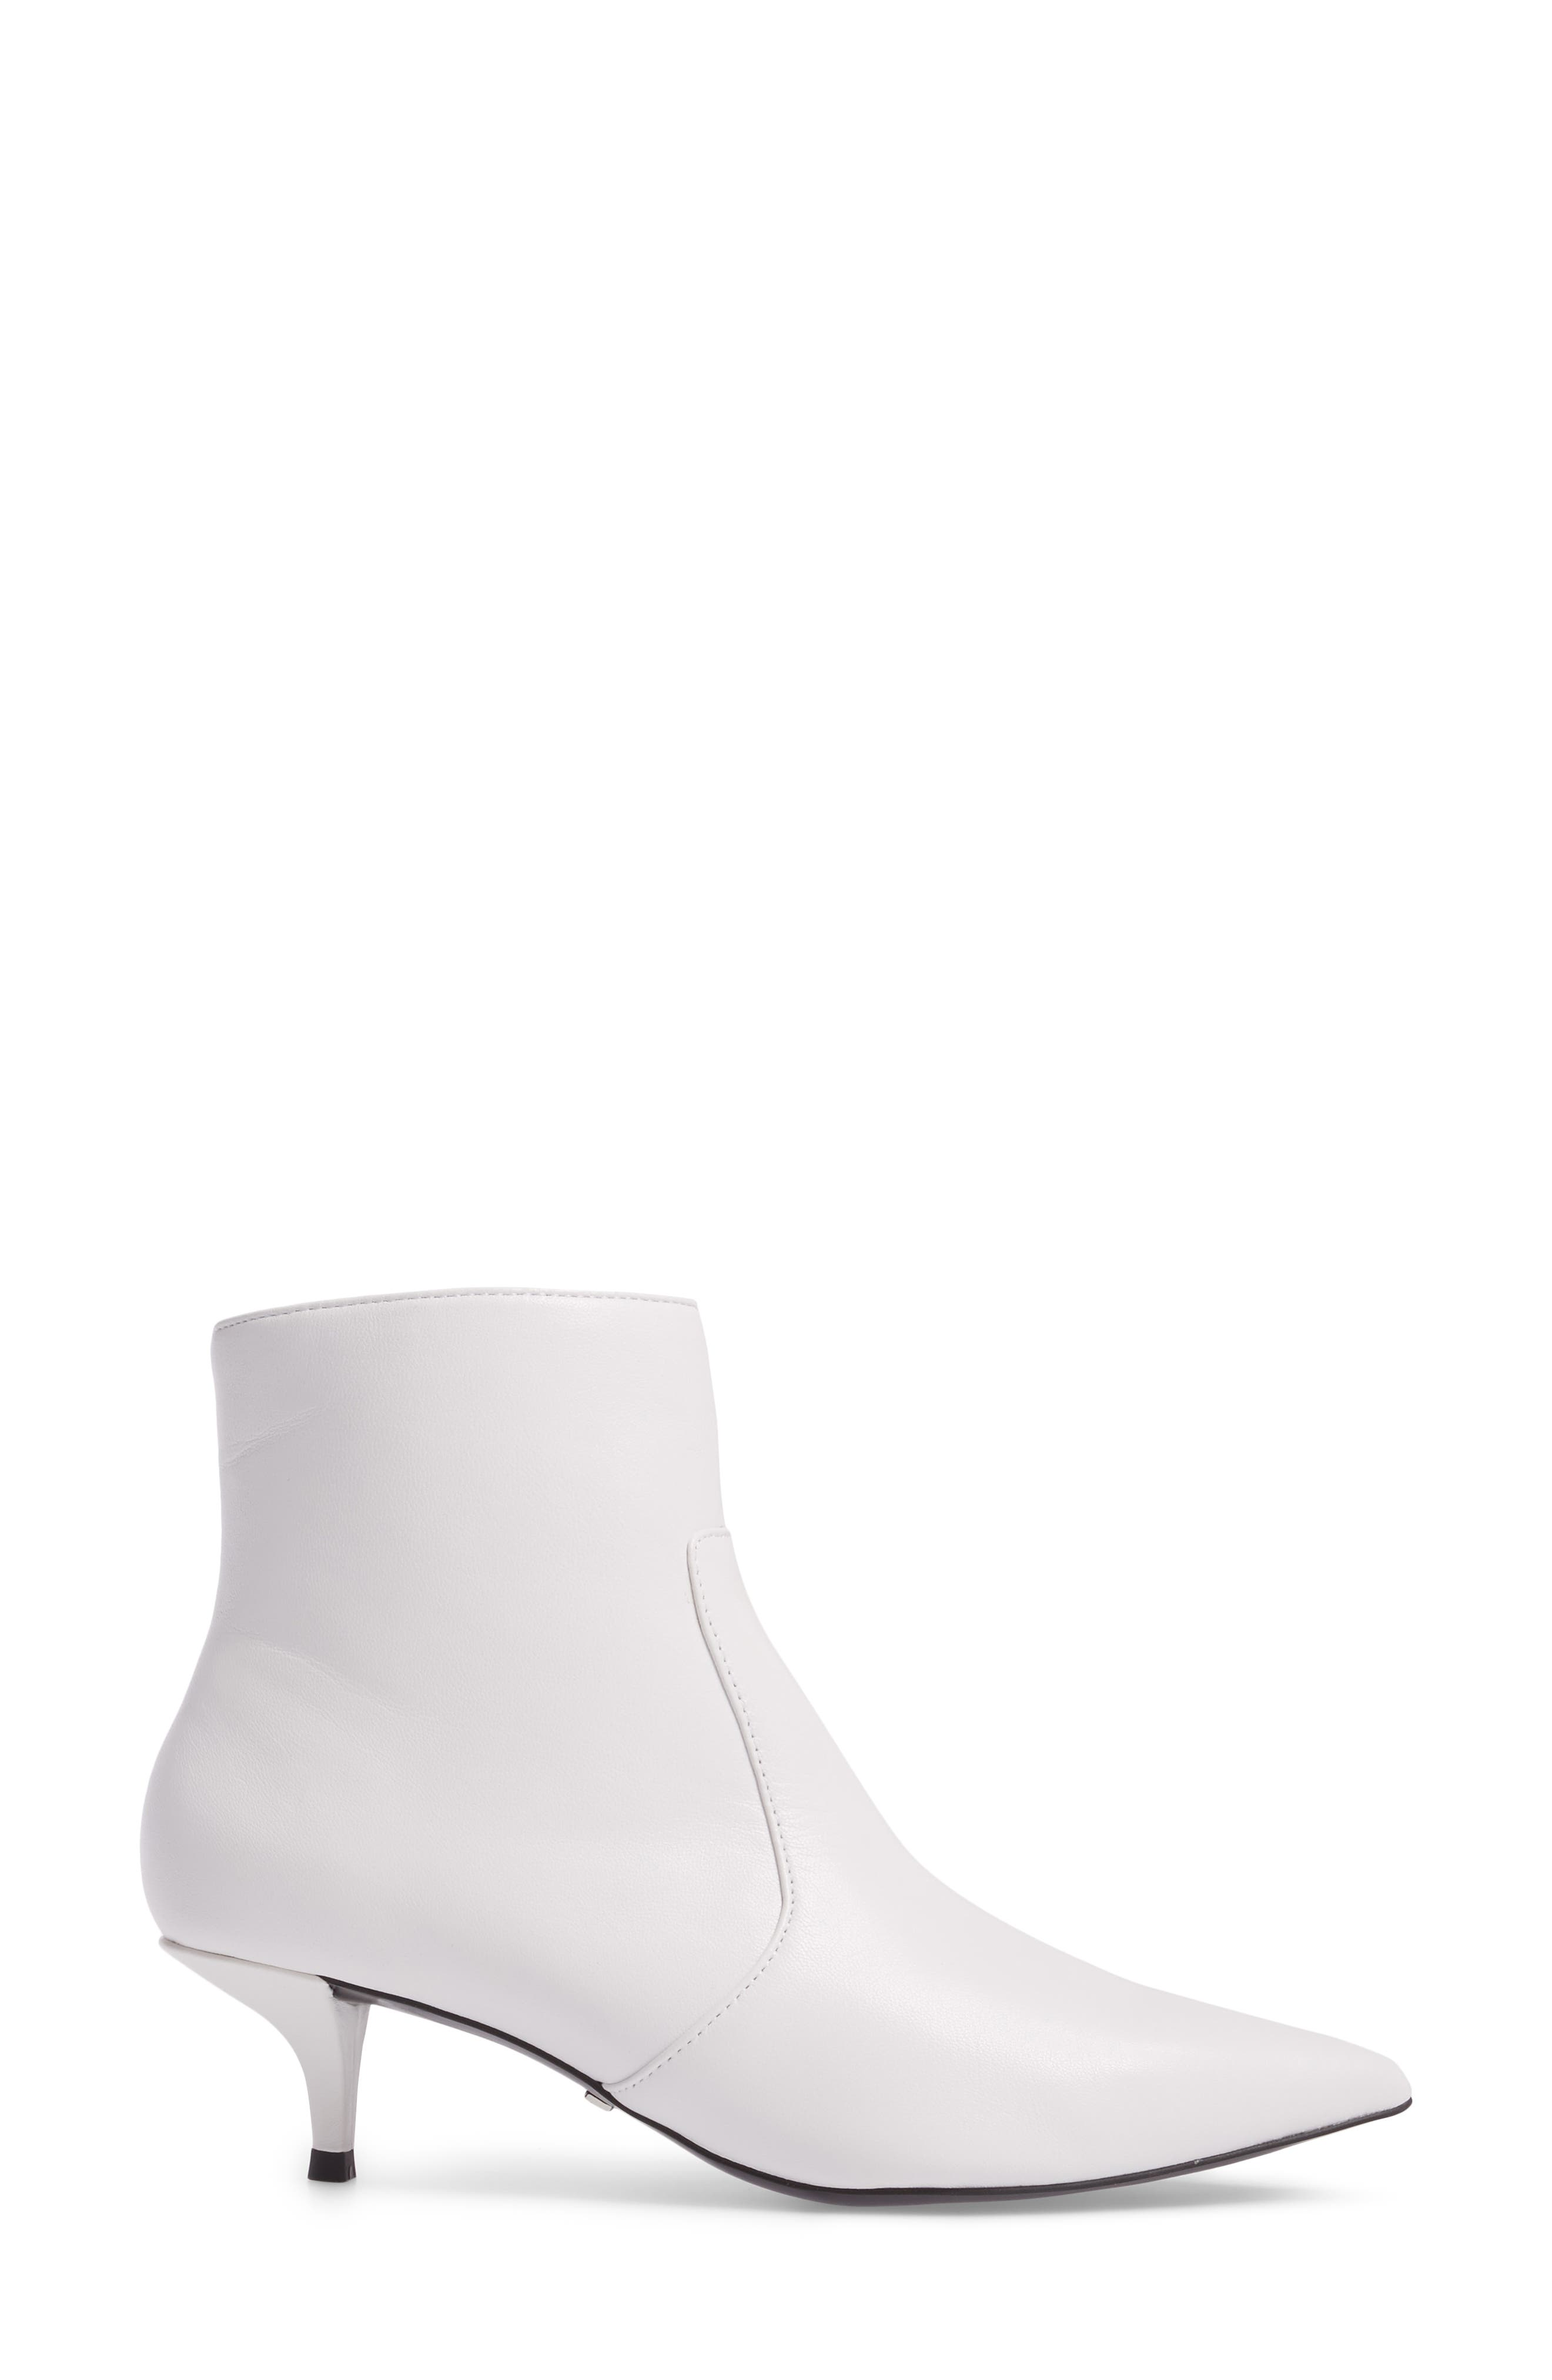 Alternate Image 3  - Topshop Abba Pointy Toe Bootie (Women)